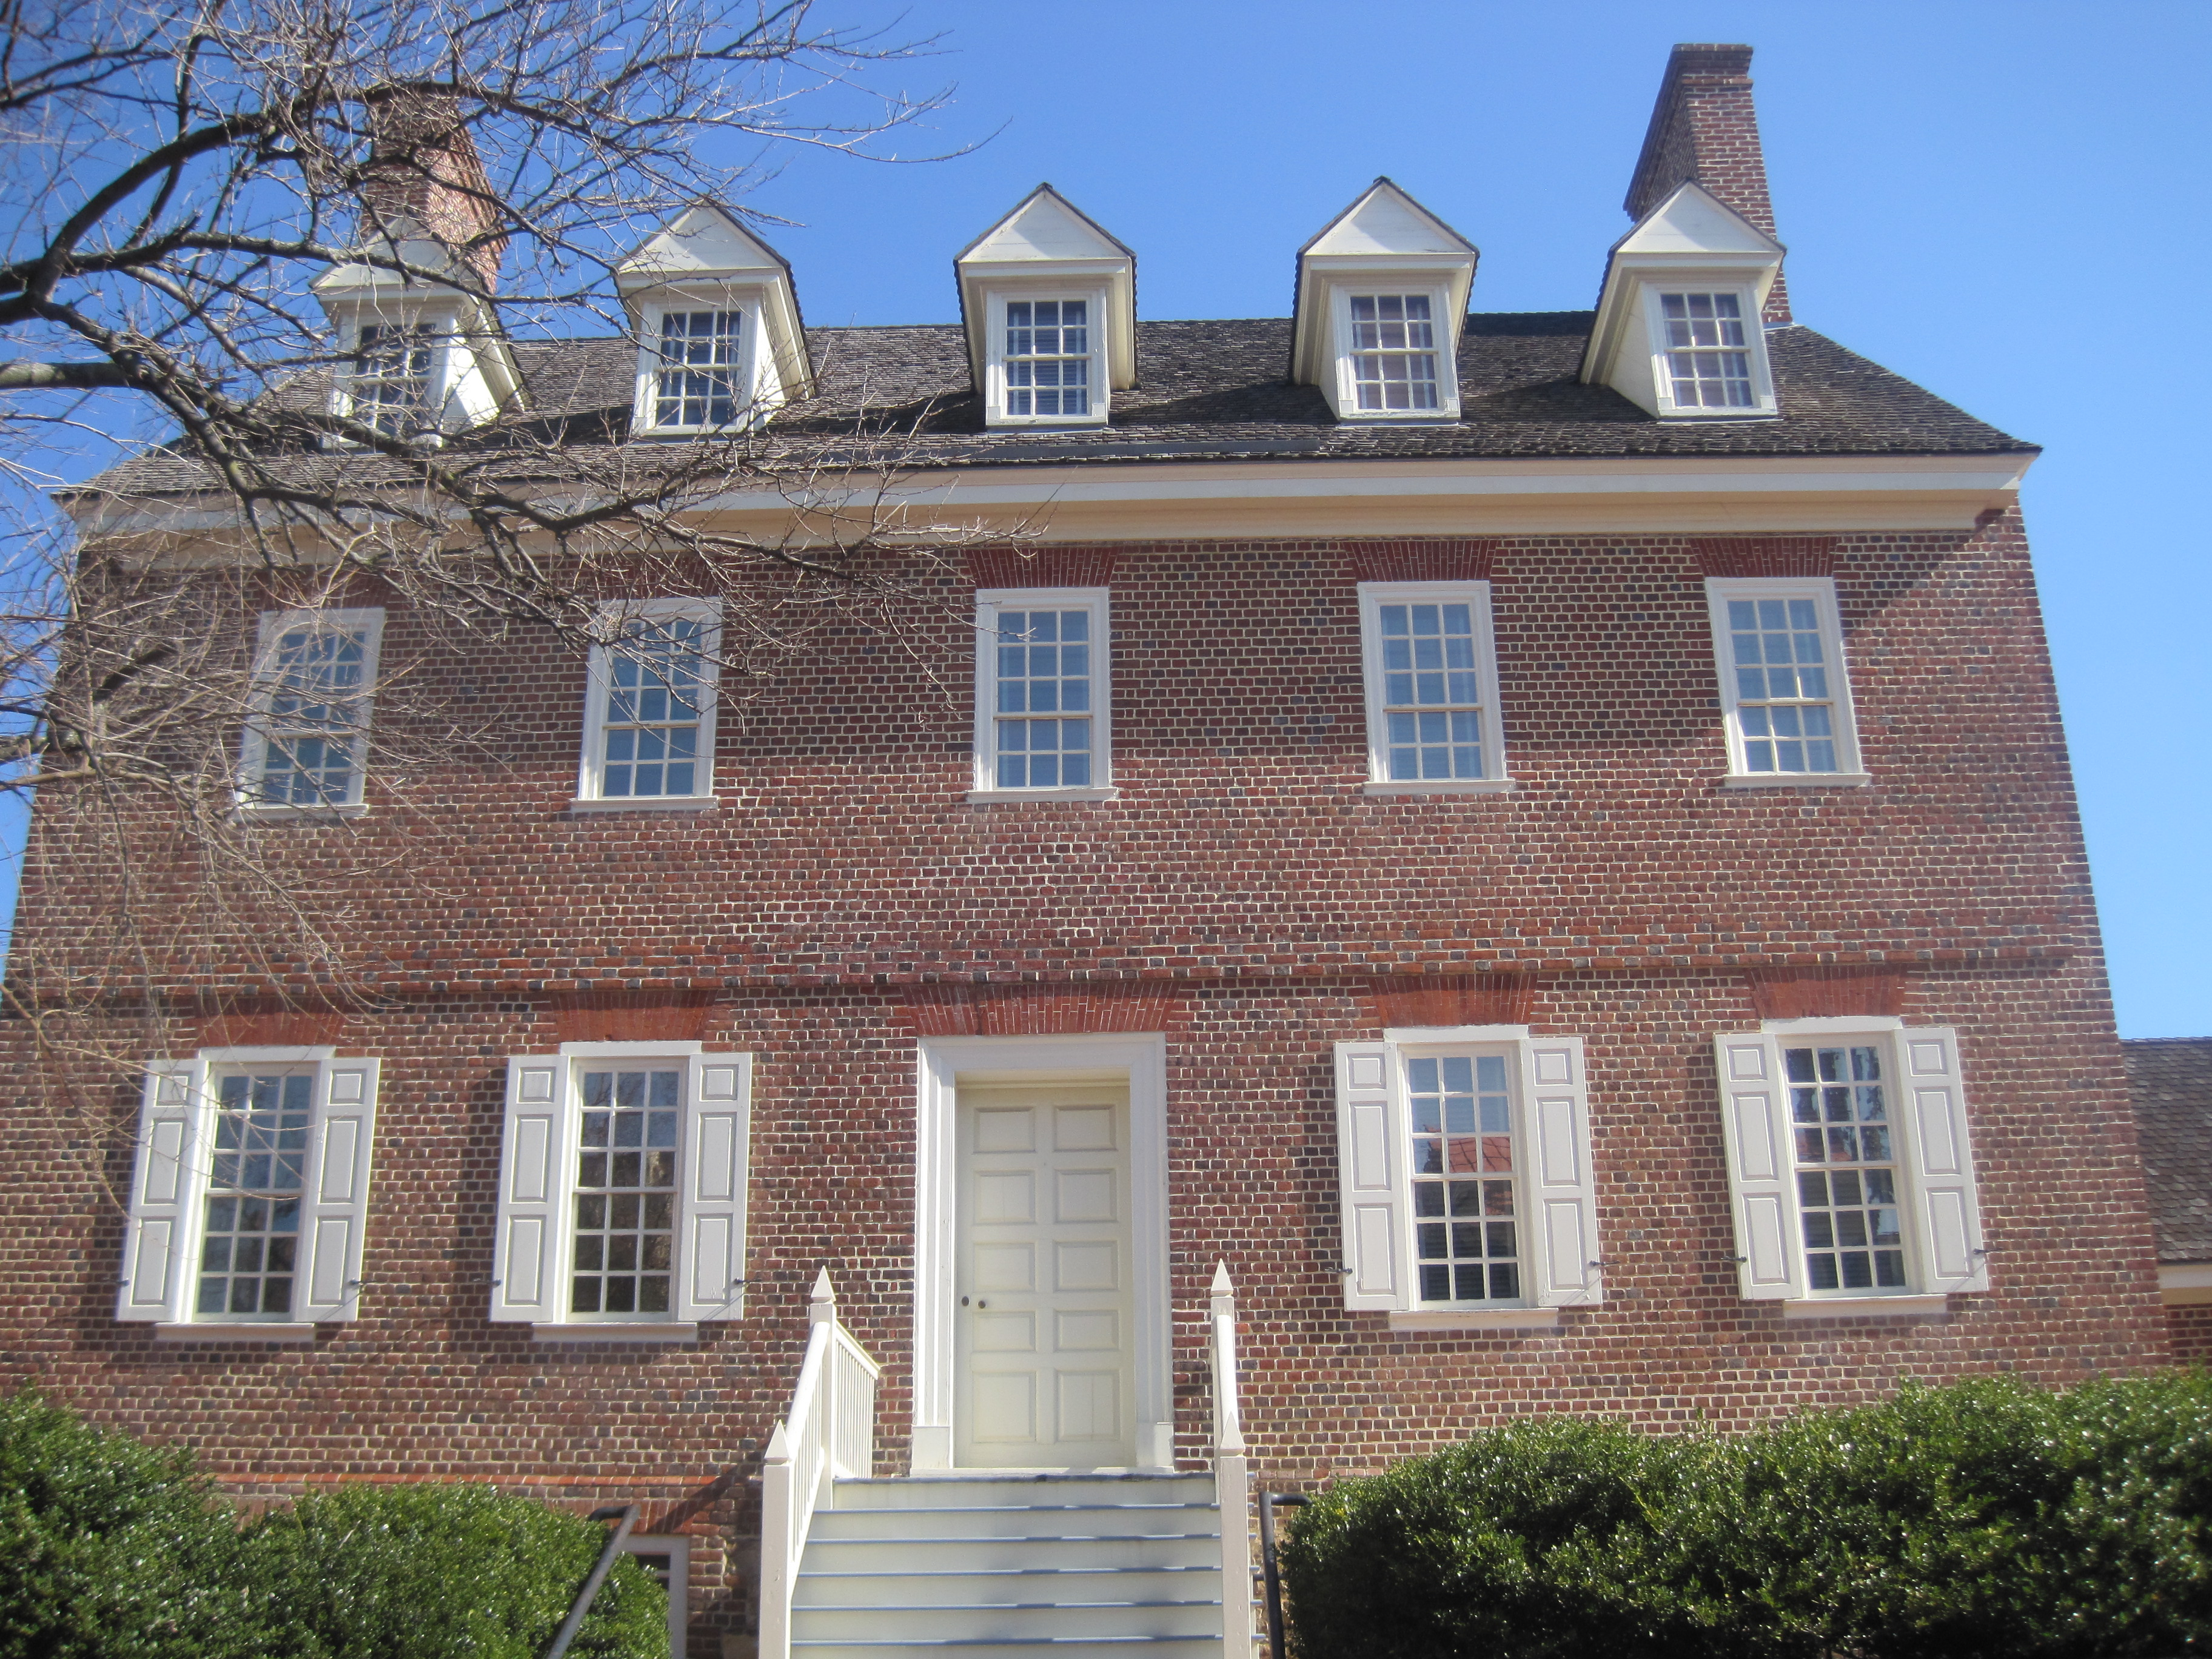 Lovely Charles Carroll The Barrister House U2013 King George Street U2013 Campus Of St.  Johnu0027s College